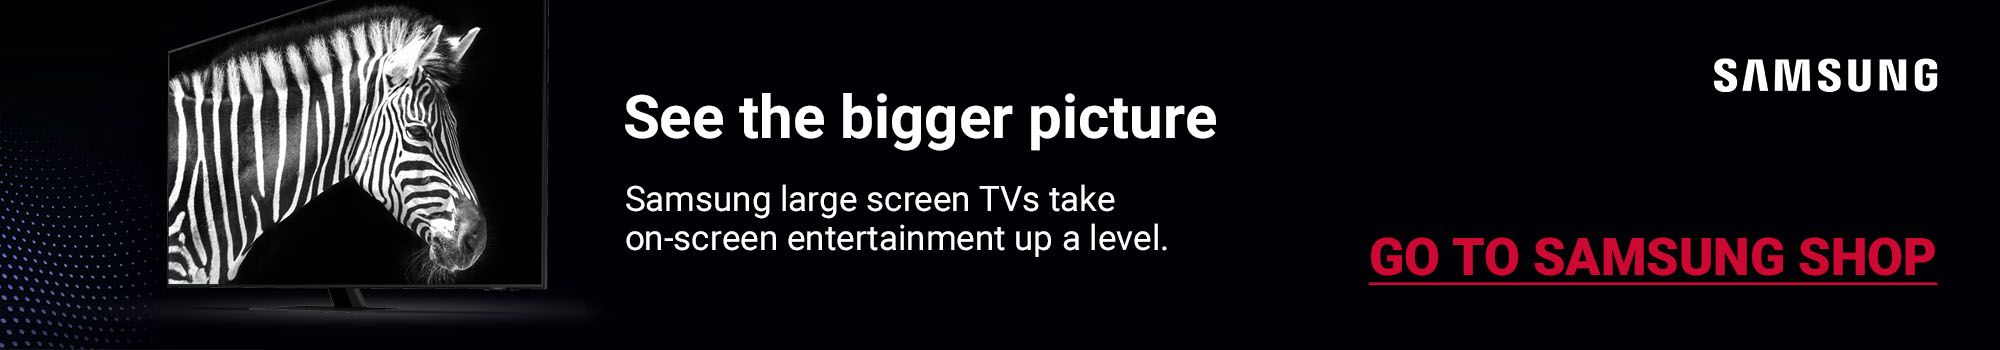 Samsung large screen TVs take on-screen entertainment up a level. Click here to go to Samsung Shop